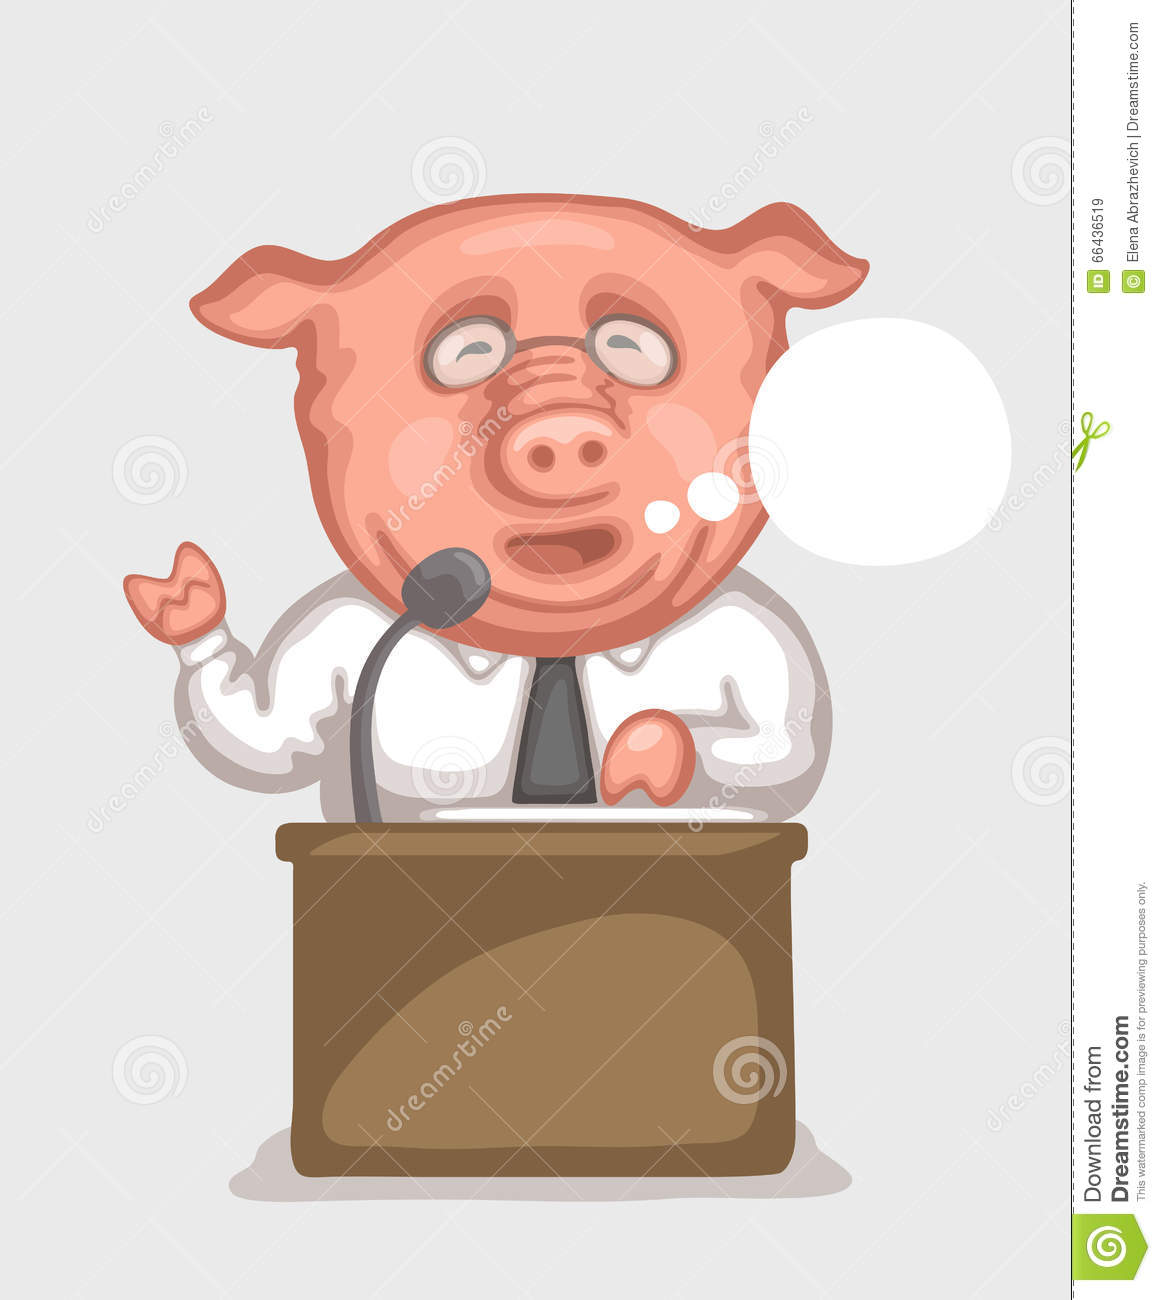 Pig-speaker Behind A Tribune Stock Vector - Image: 66436519